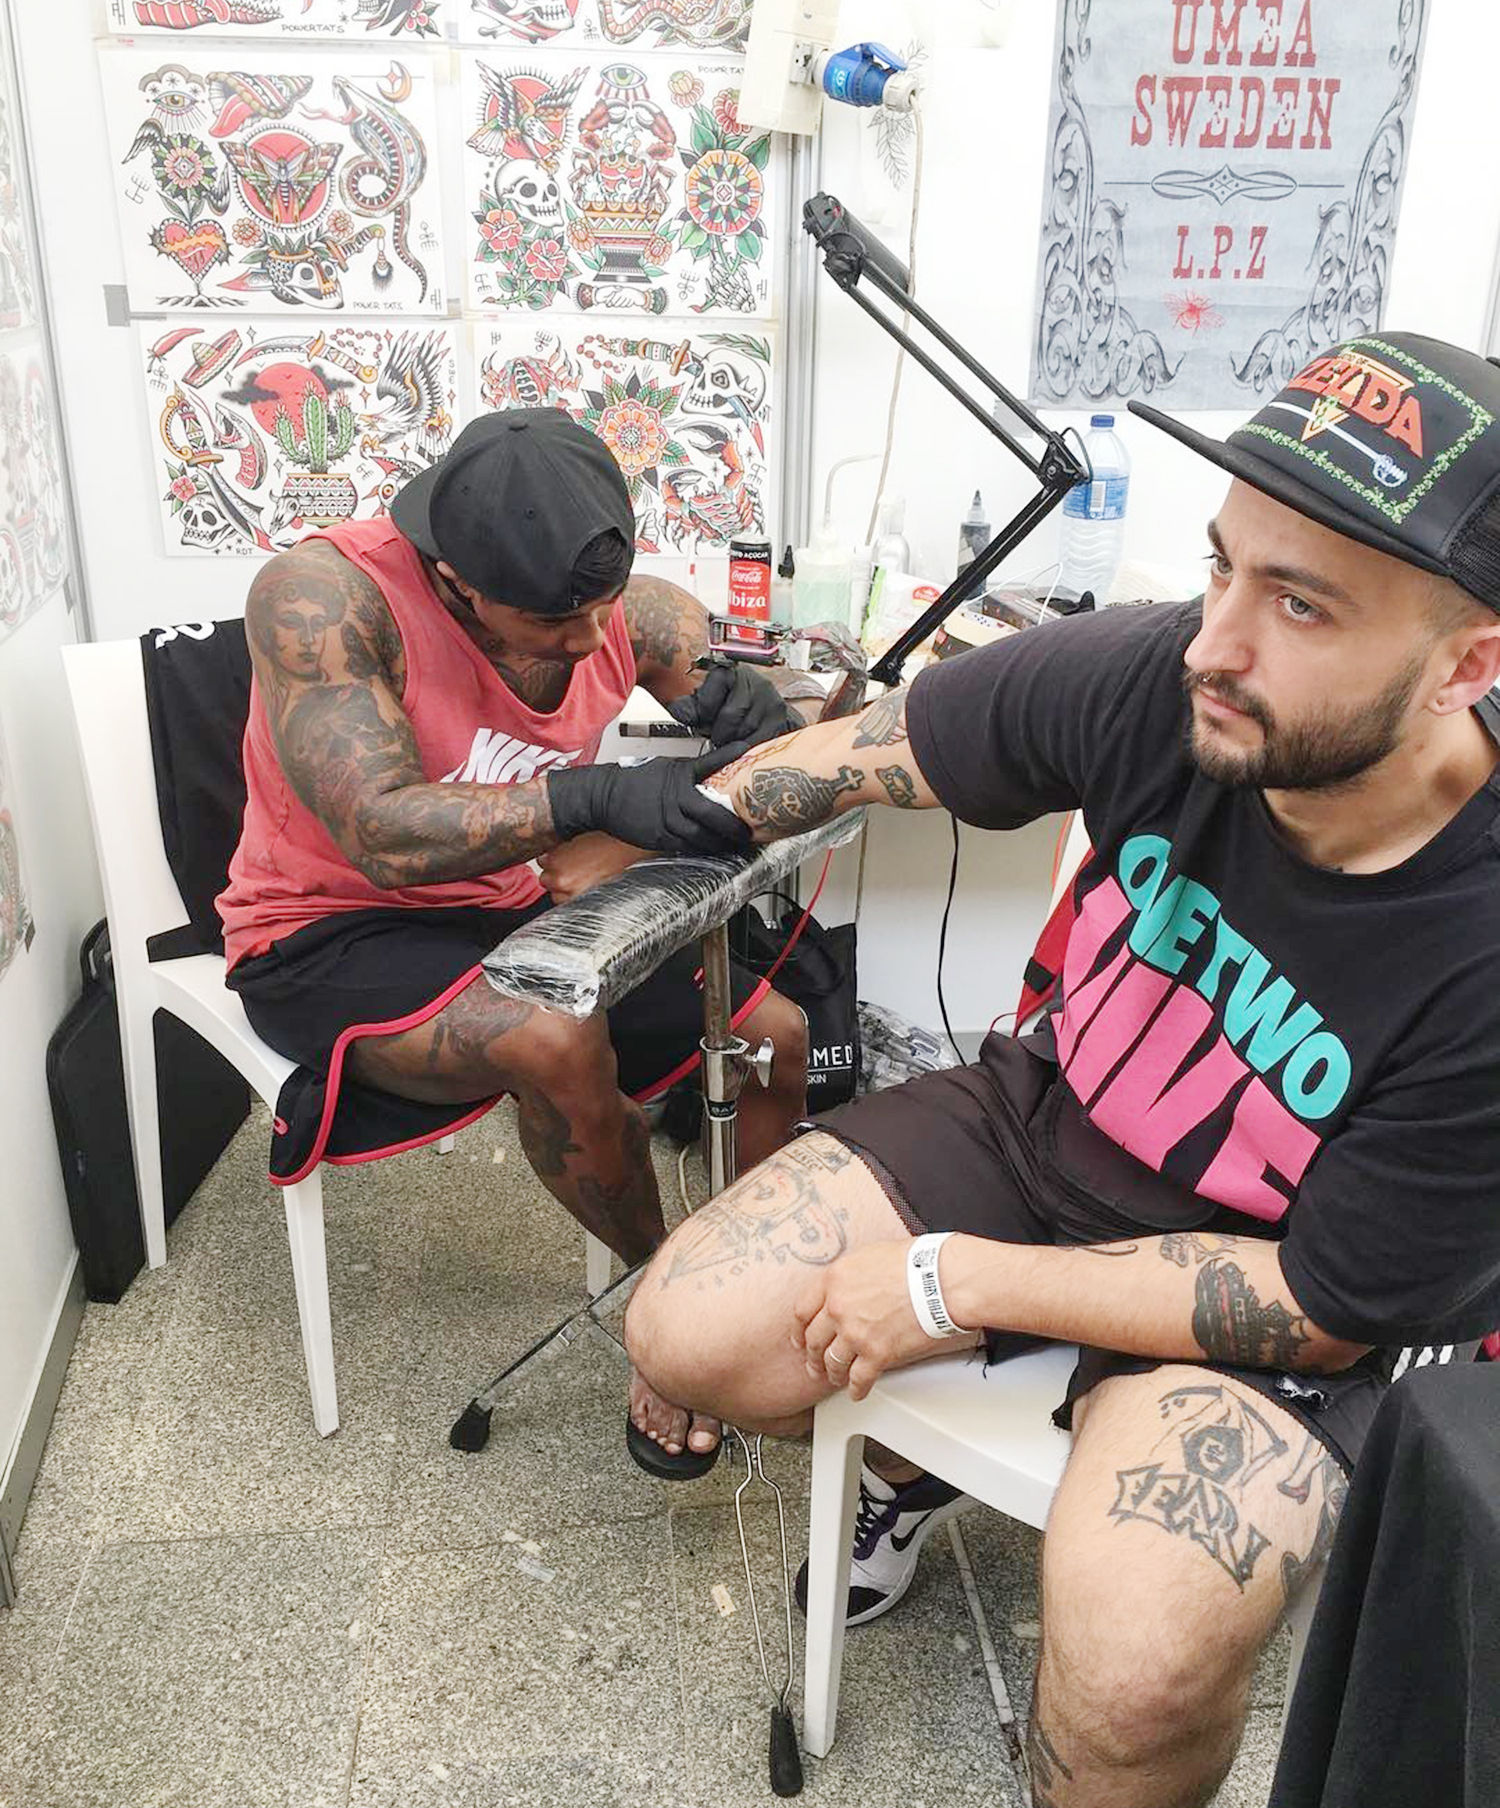 Tattooing client at Setubal tattoo show